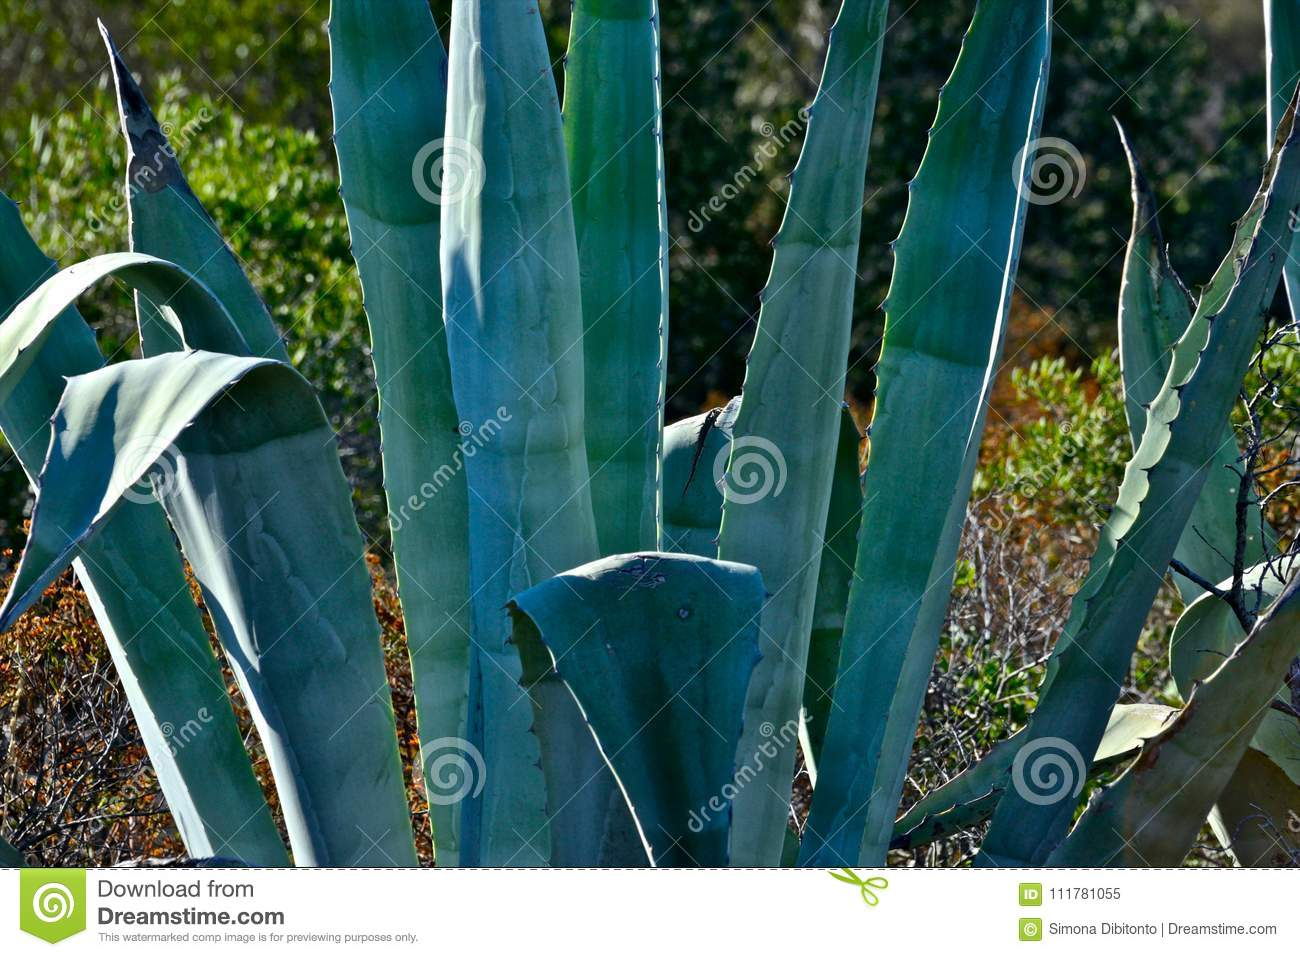 Closeup of agave plants as a background